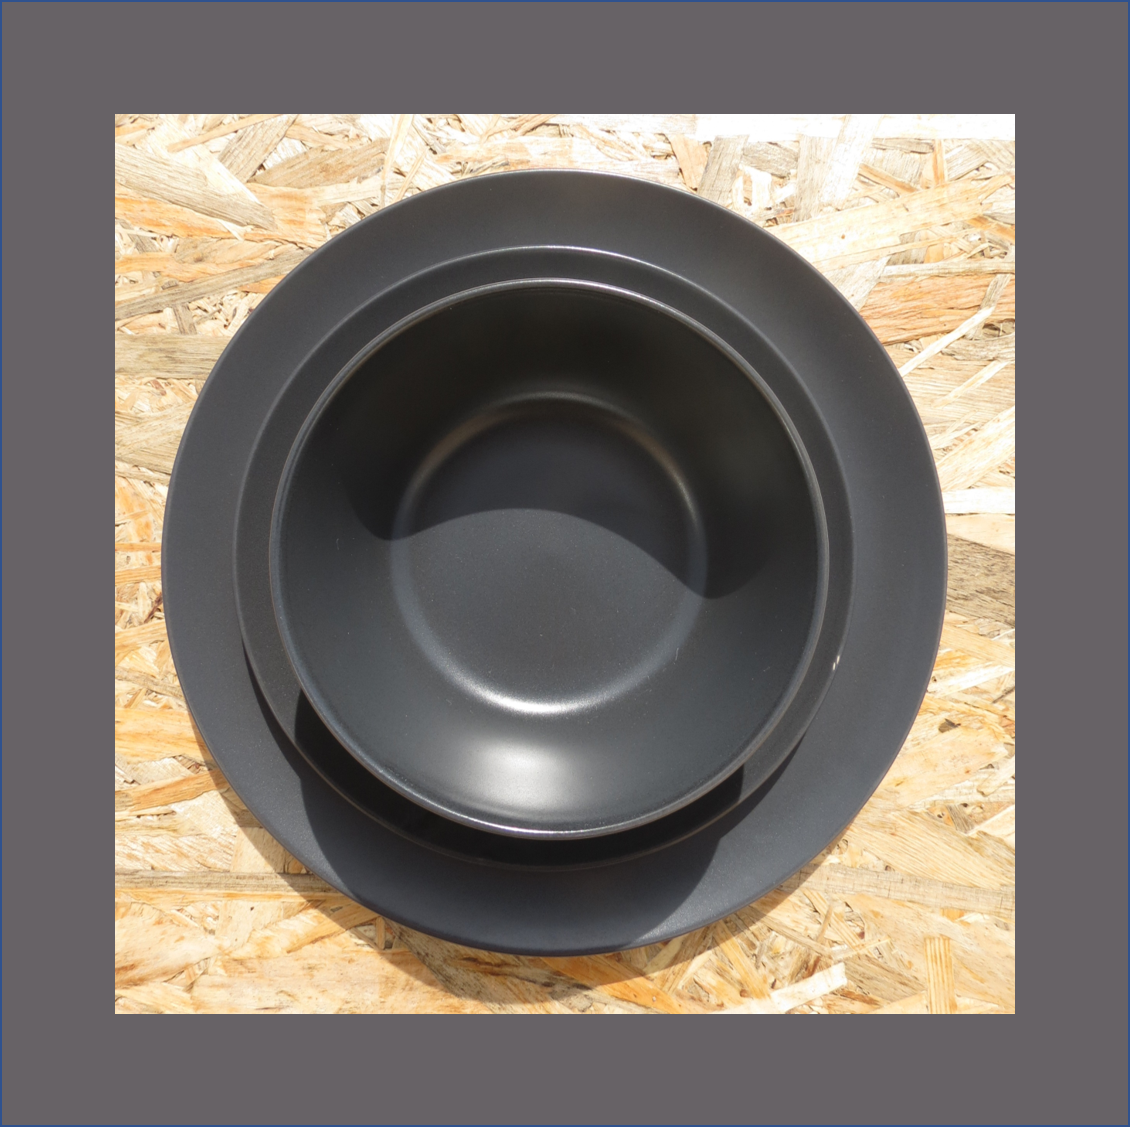 black-crockery